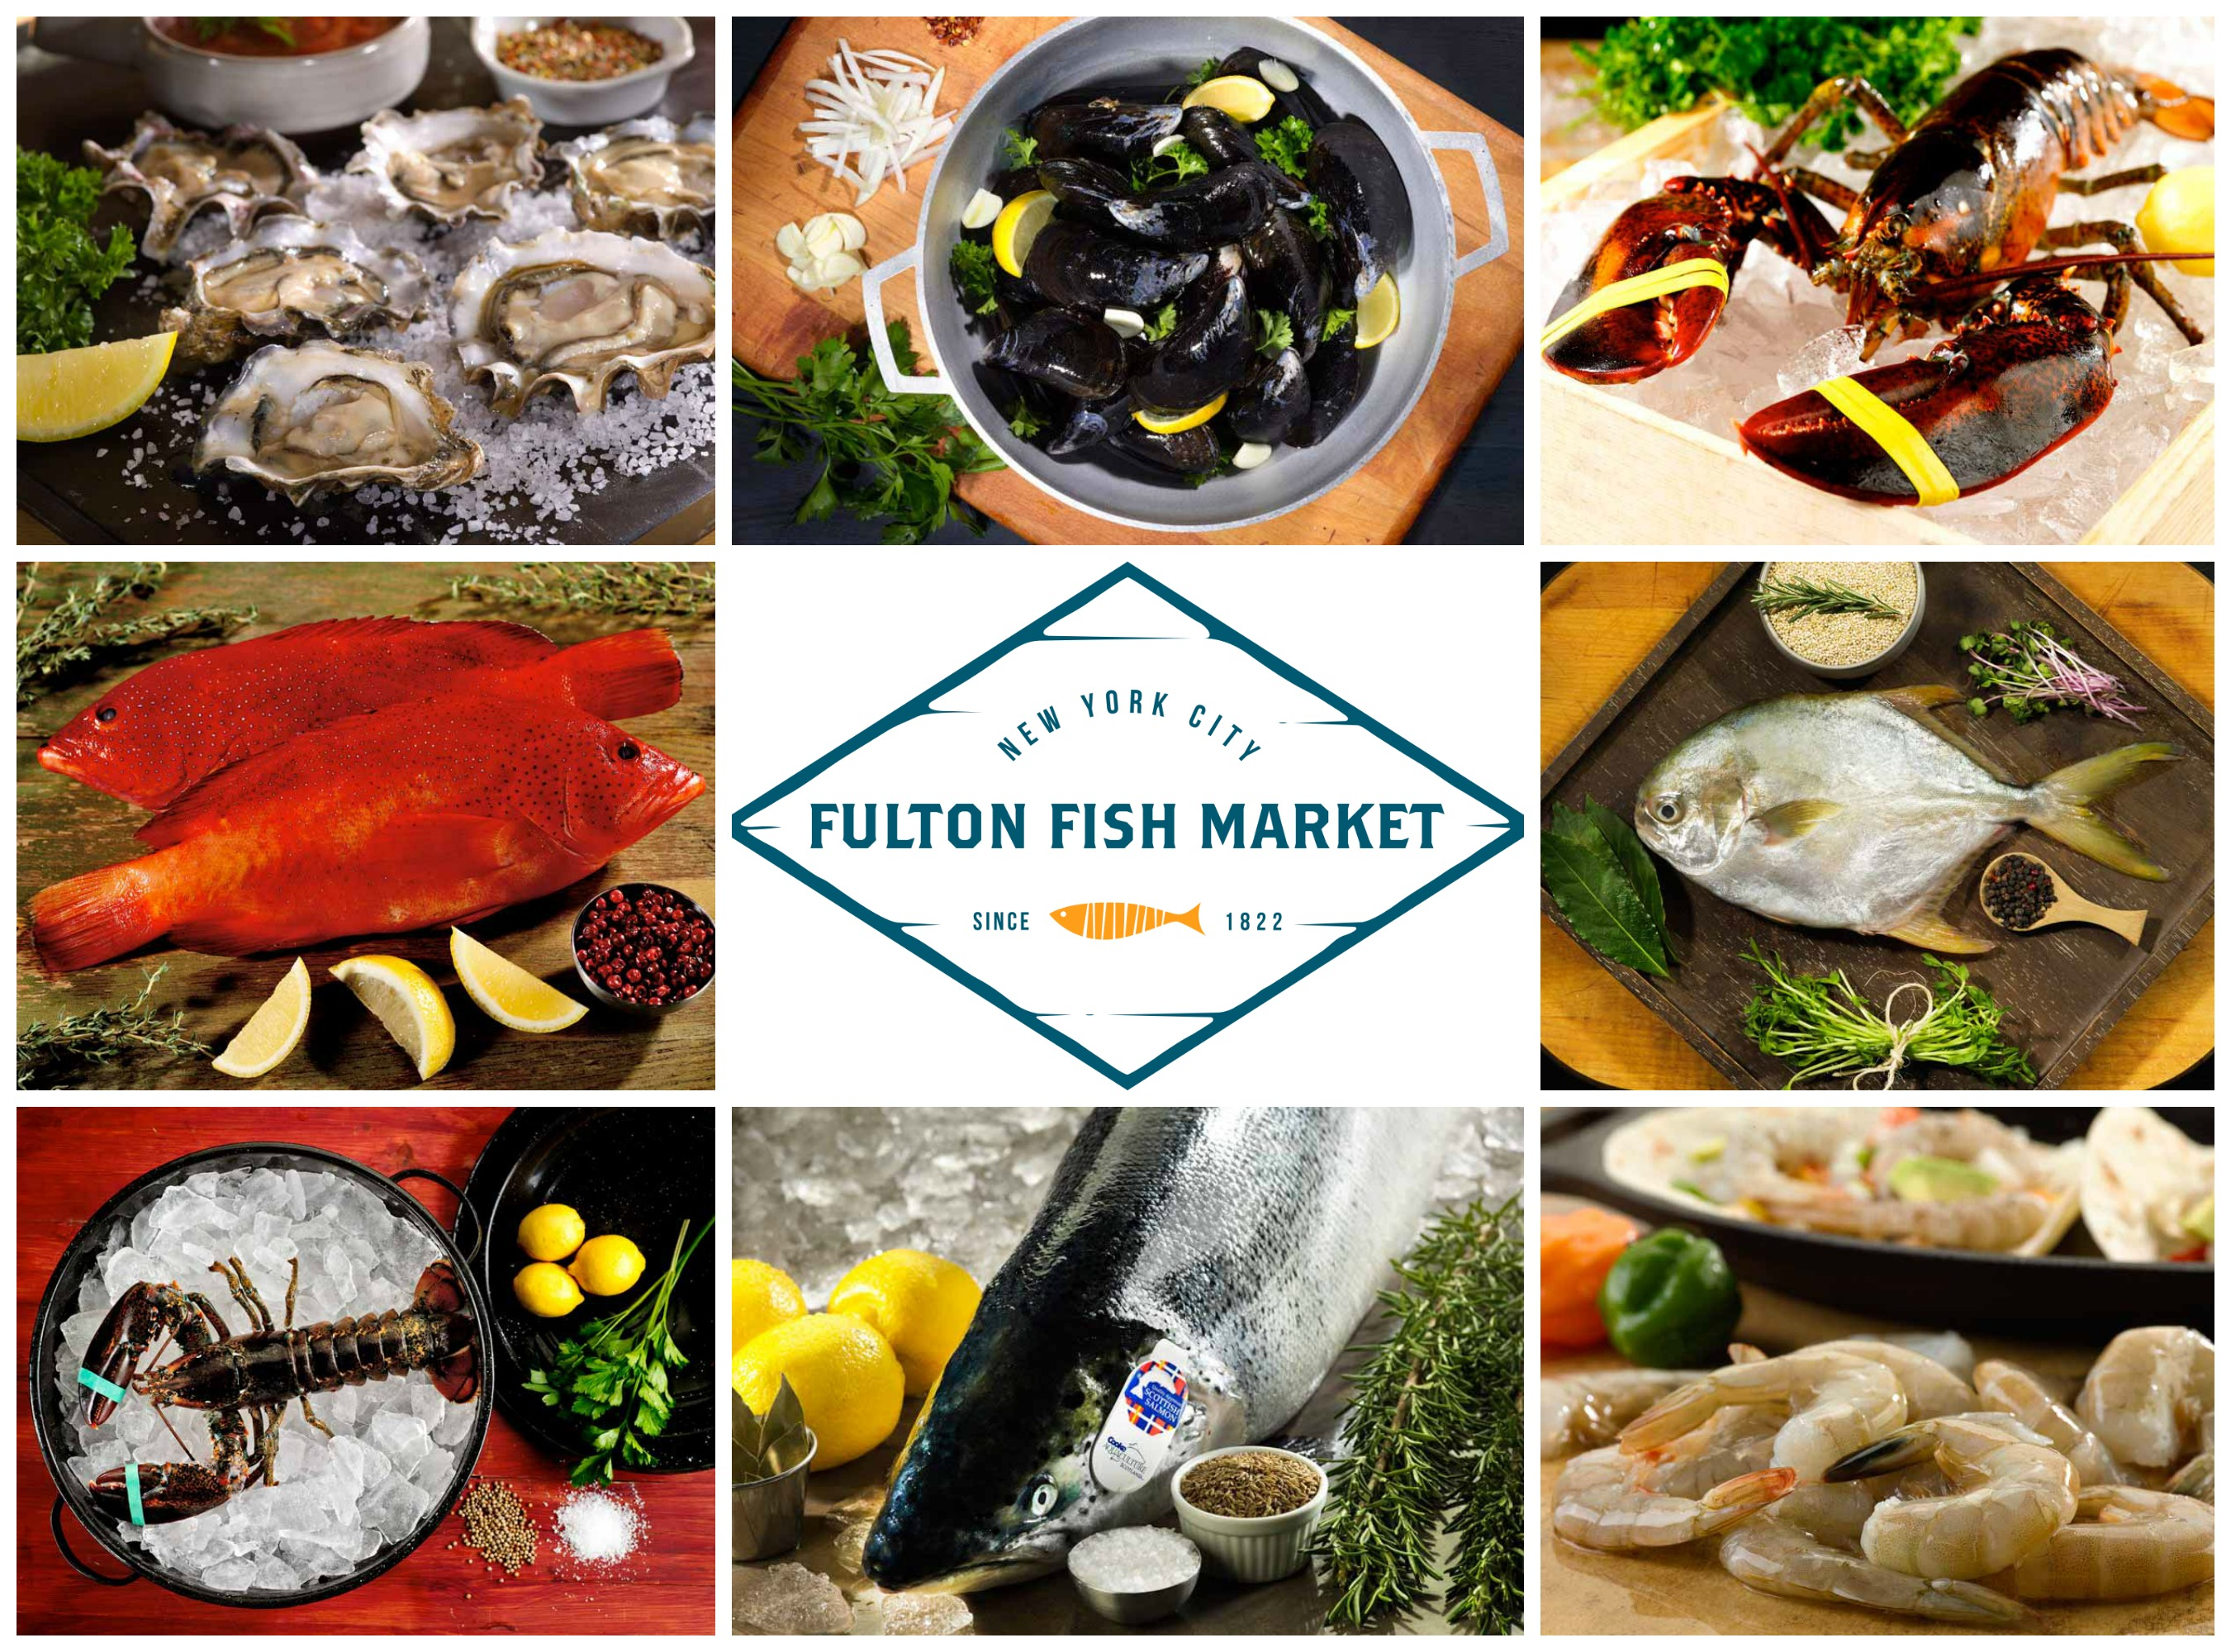 NYC's Fulton Fish Market - The freshest fish delivered from the ocean to your door!